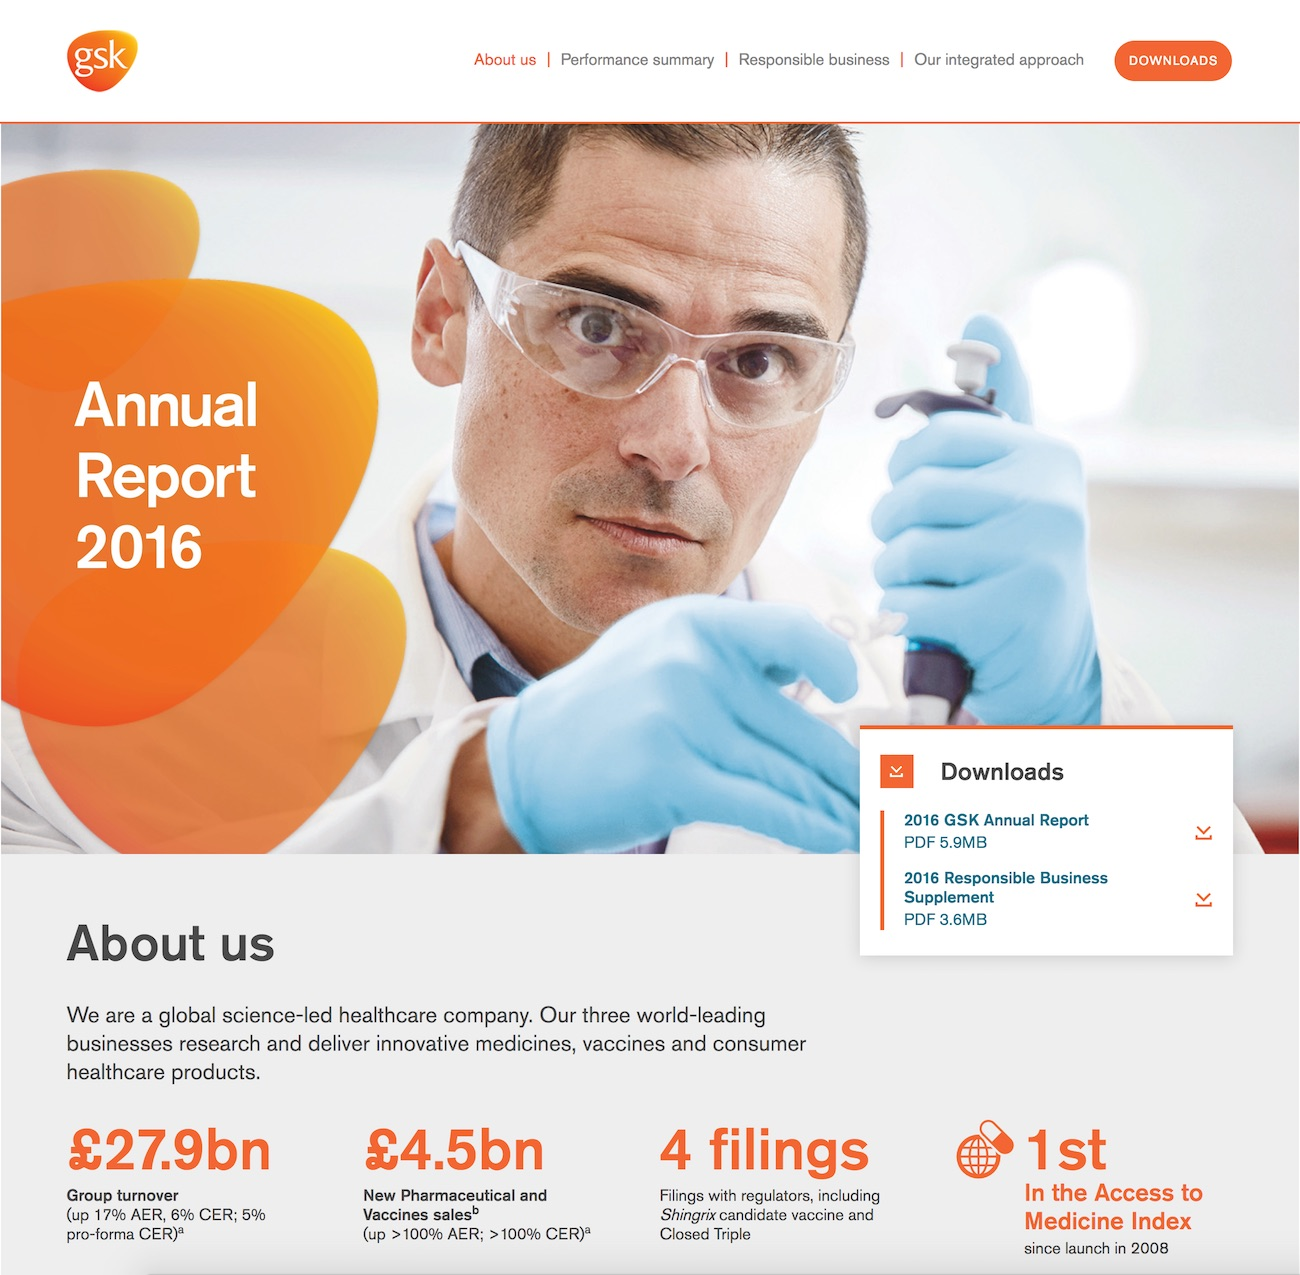 Screenshot of GSK 2016 Annual Report on desktop